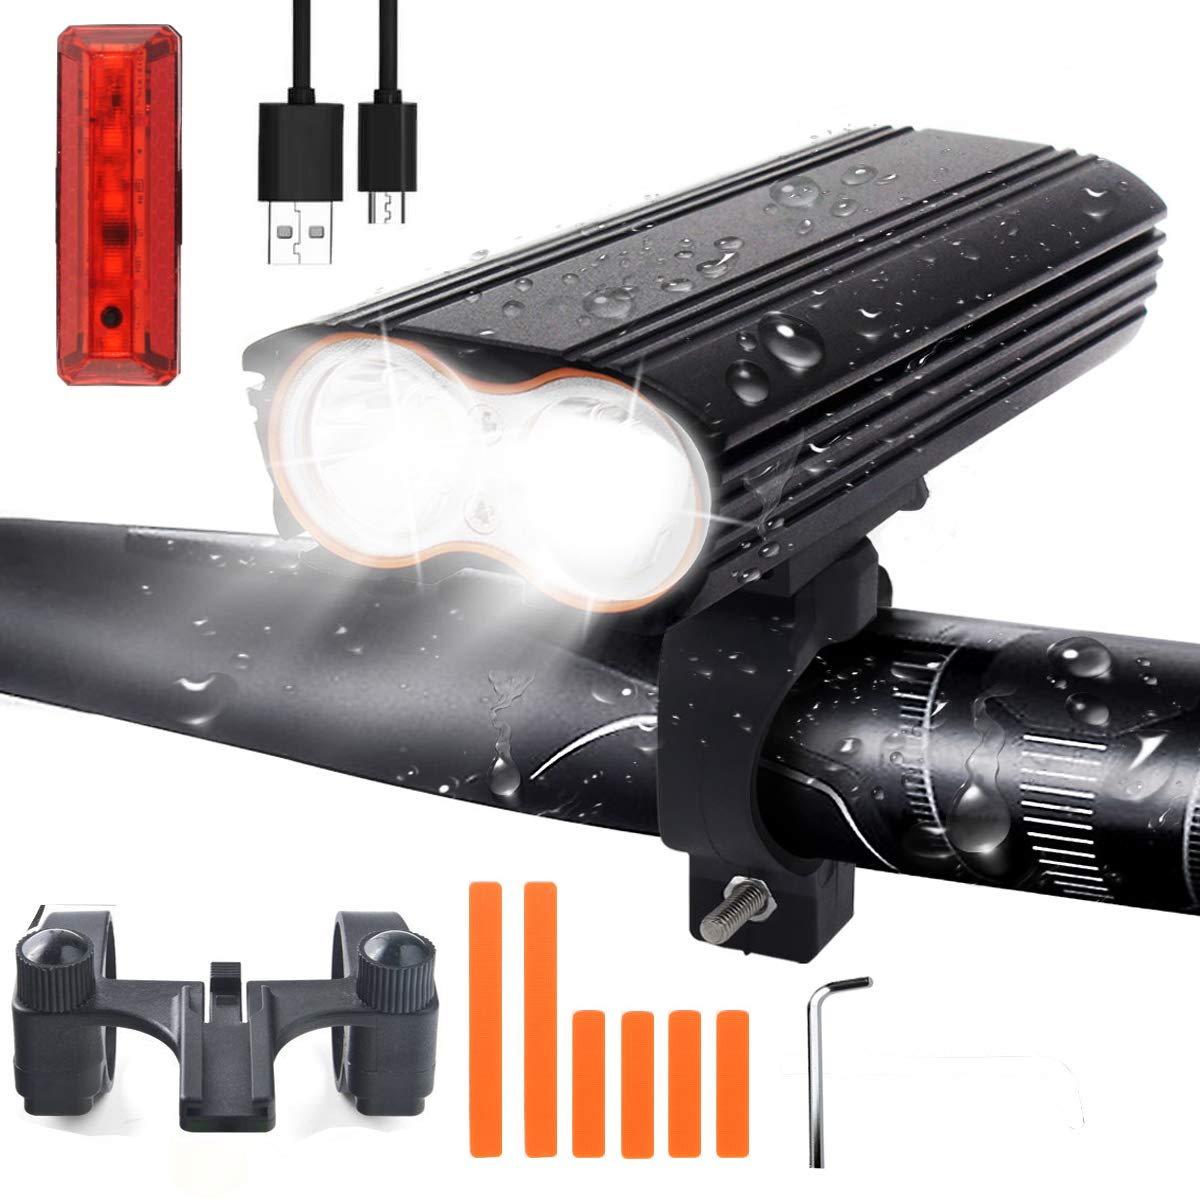 USB Rechargeable LED Waterproof Bike Light Set for Night Rider and Camping